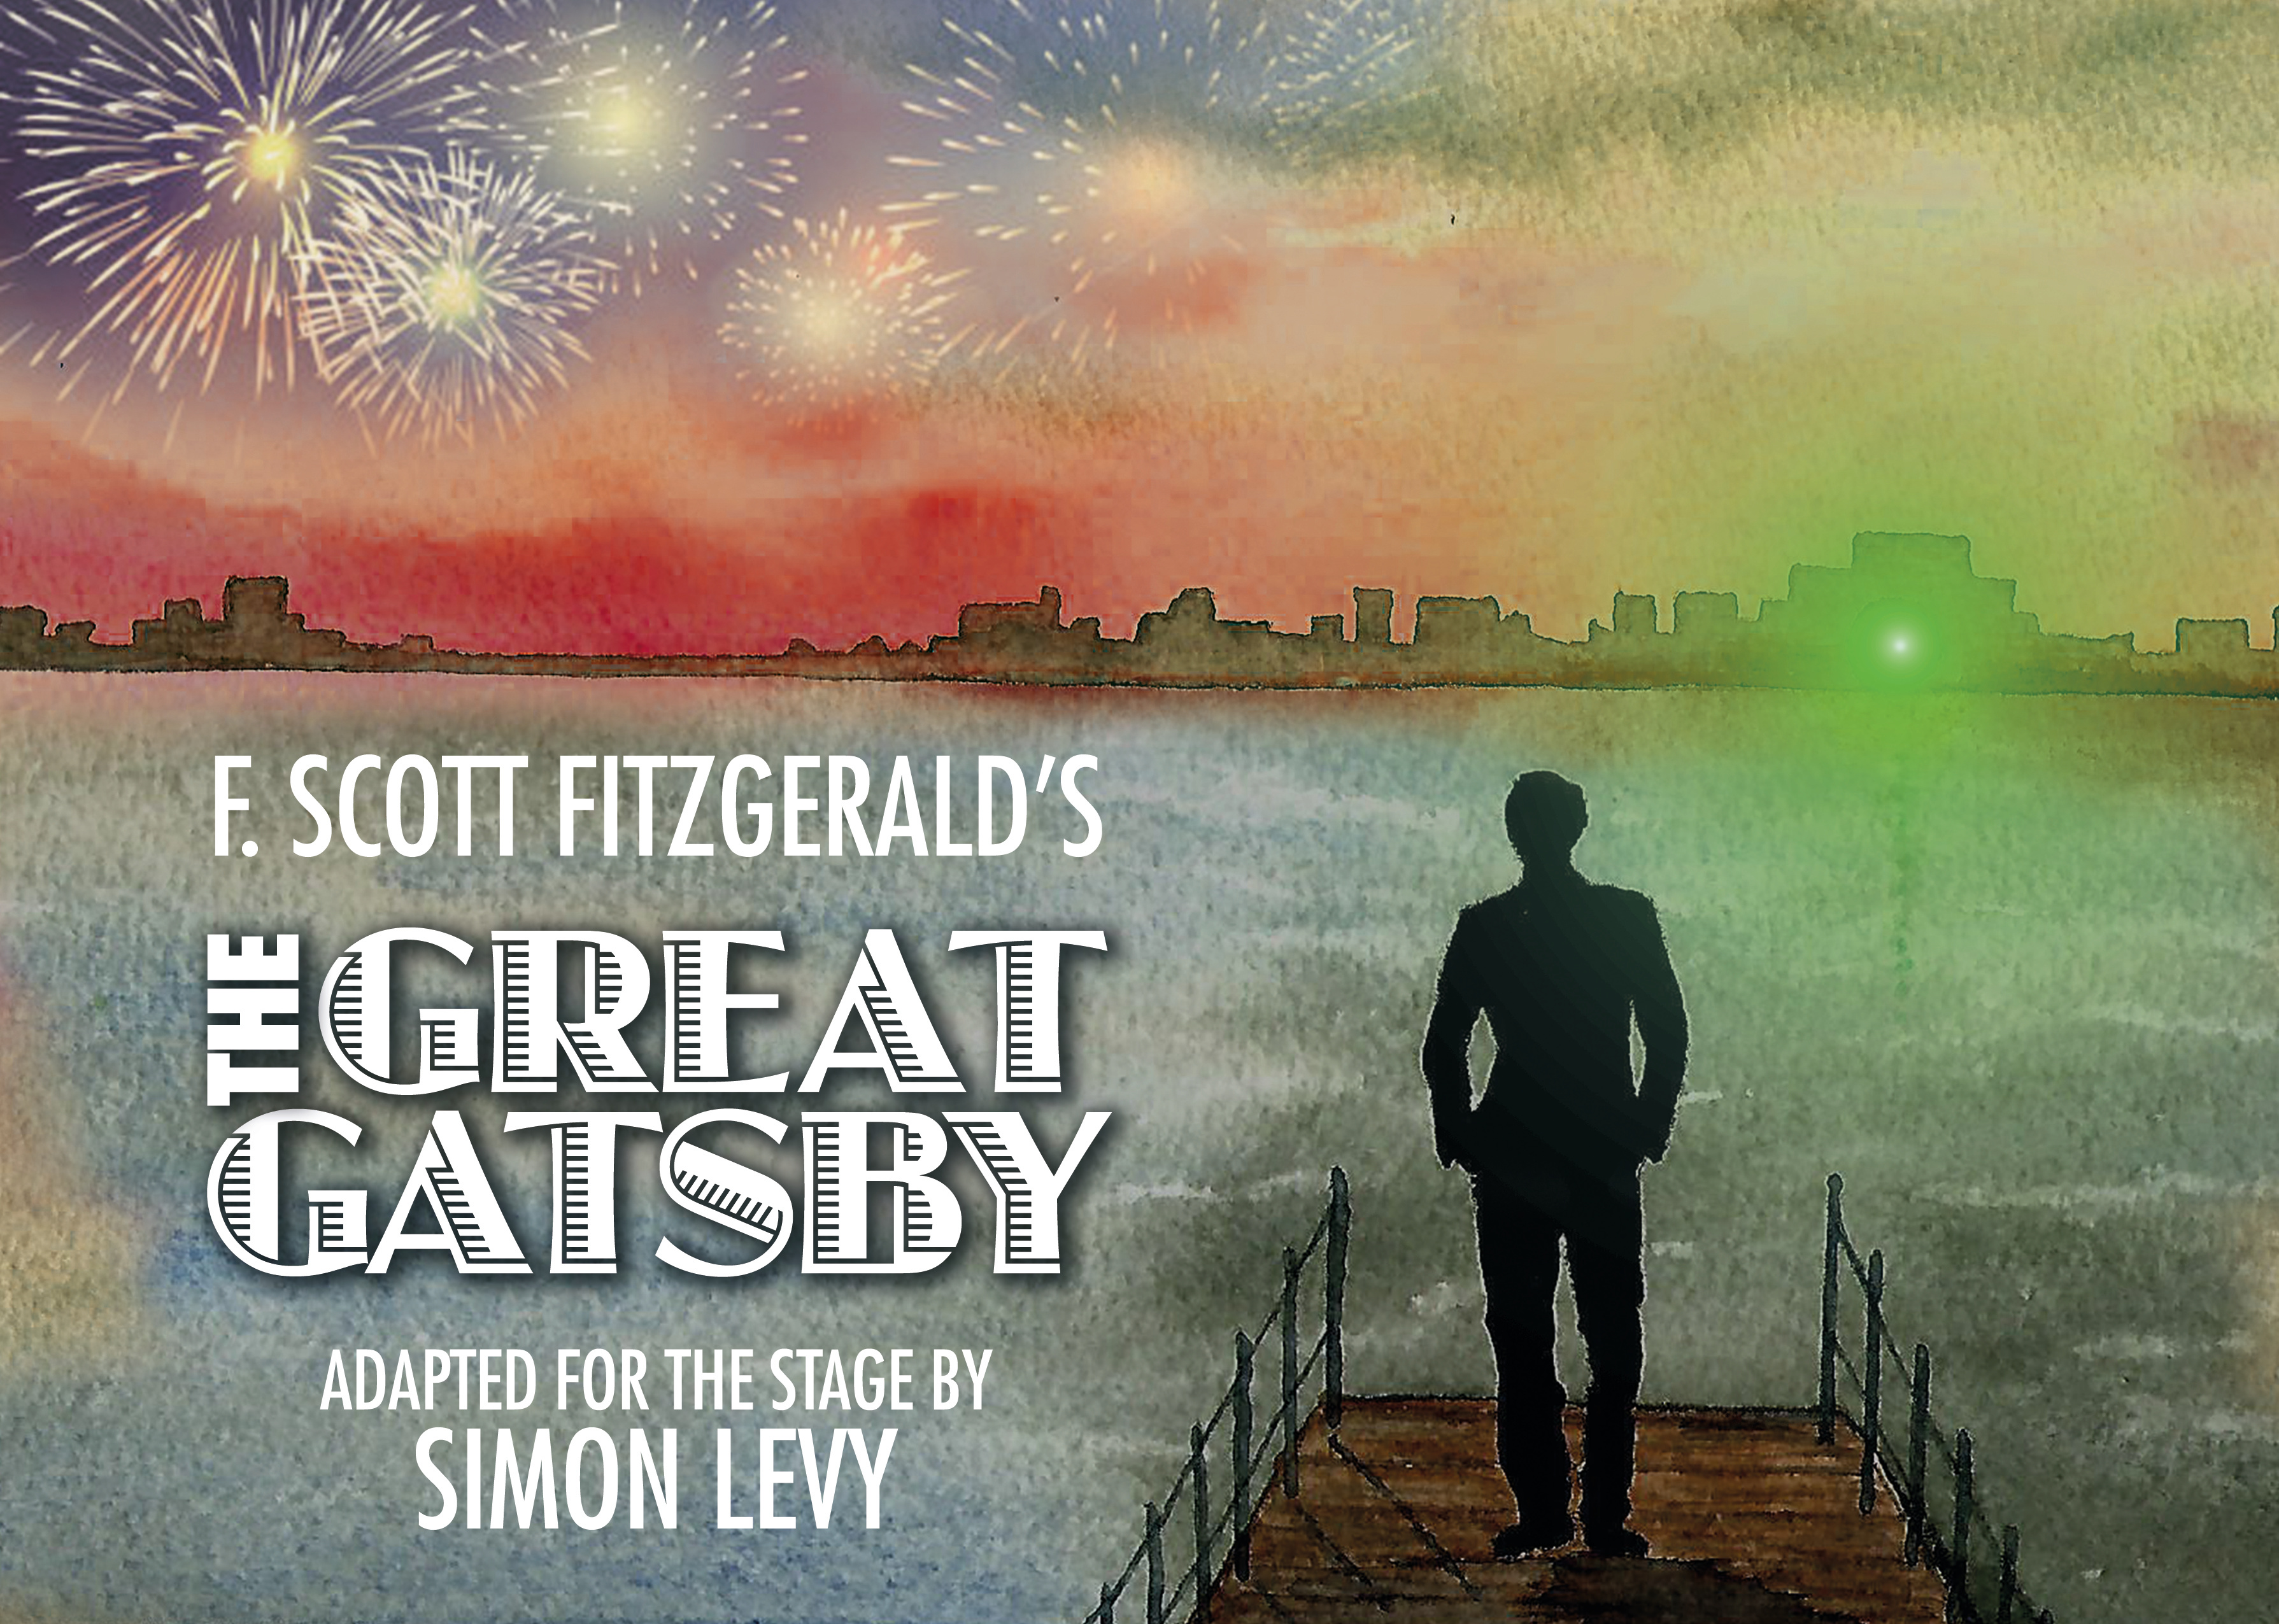 The Great Gatsby, now fully cast!